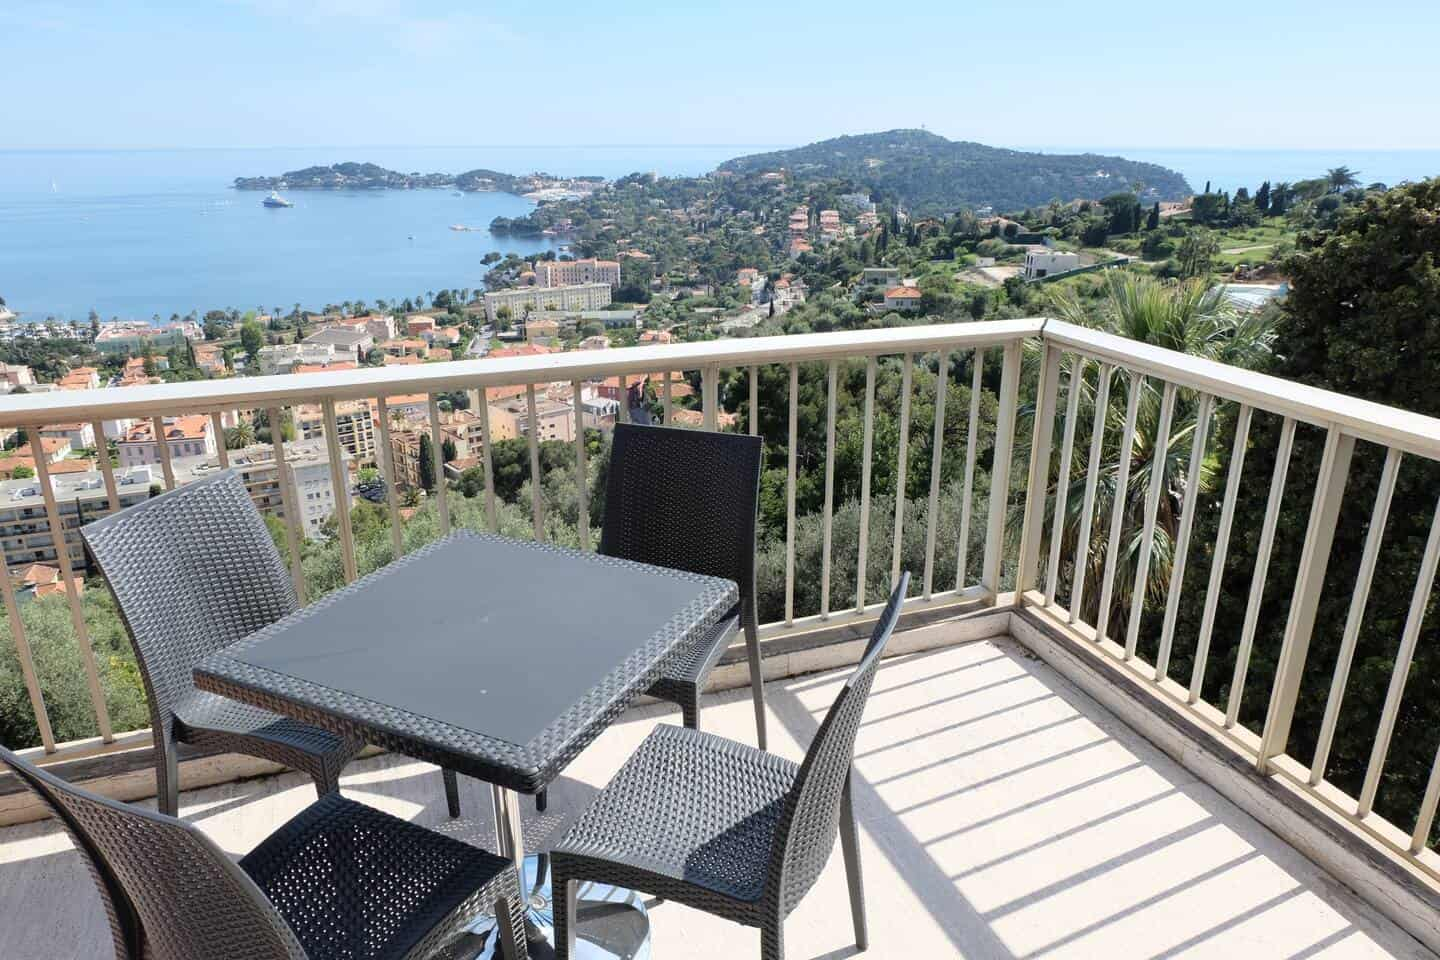 Image of Airbnb rental in Villefranche-sur-Mer, France